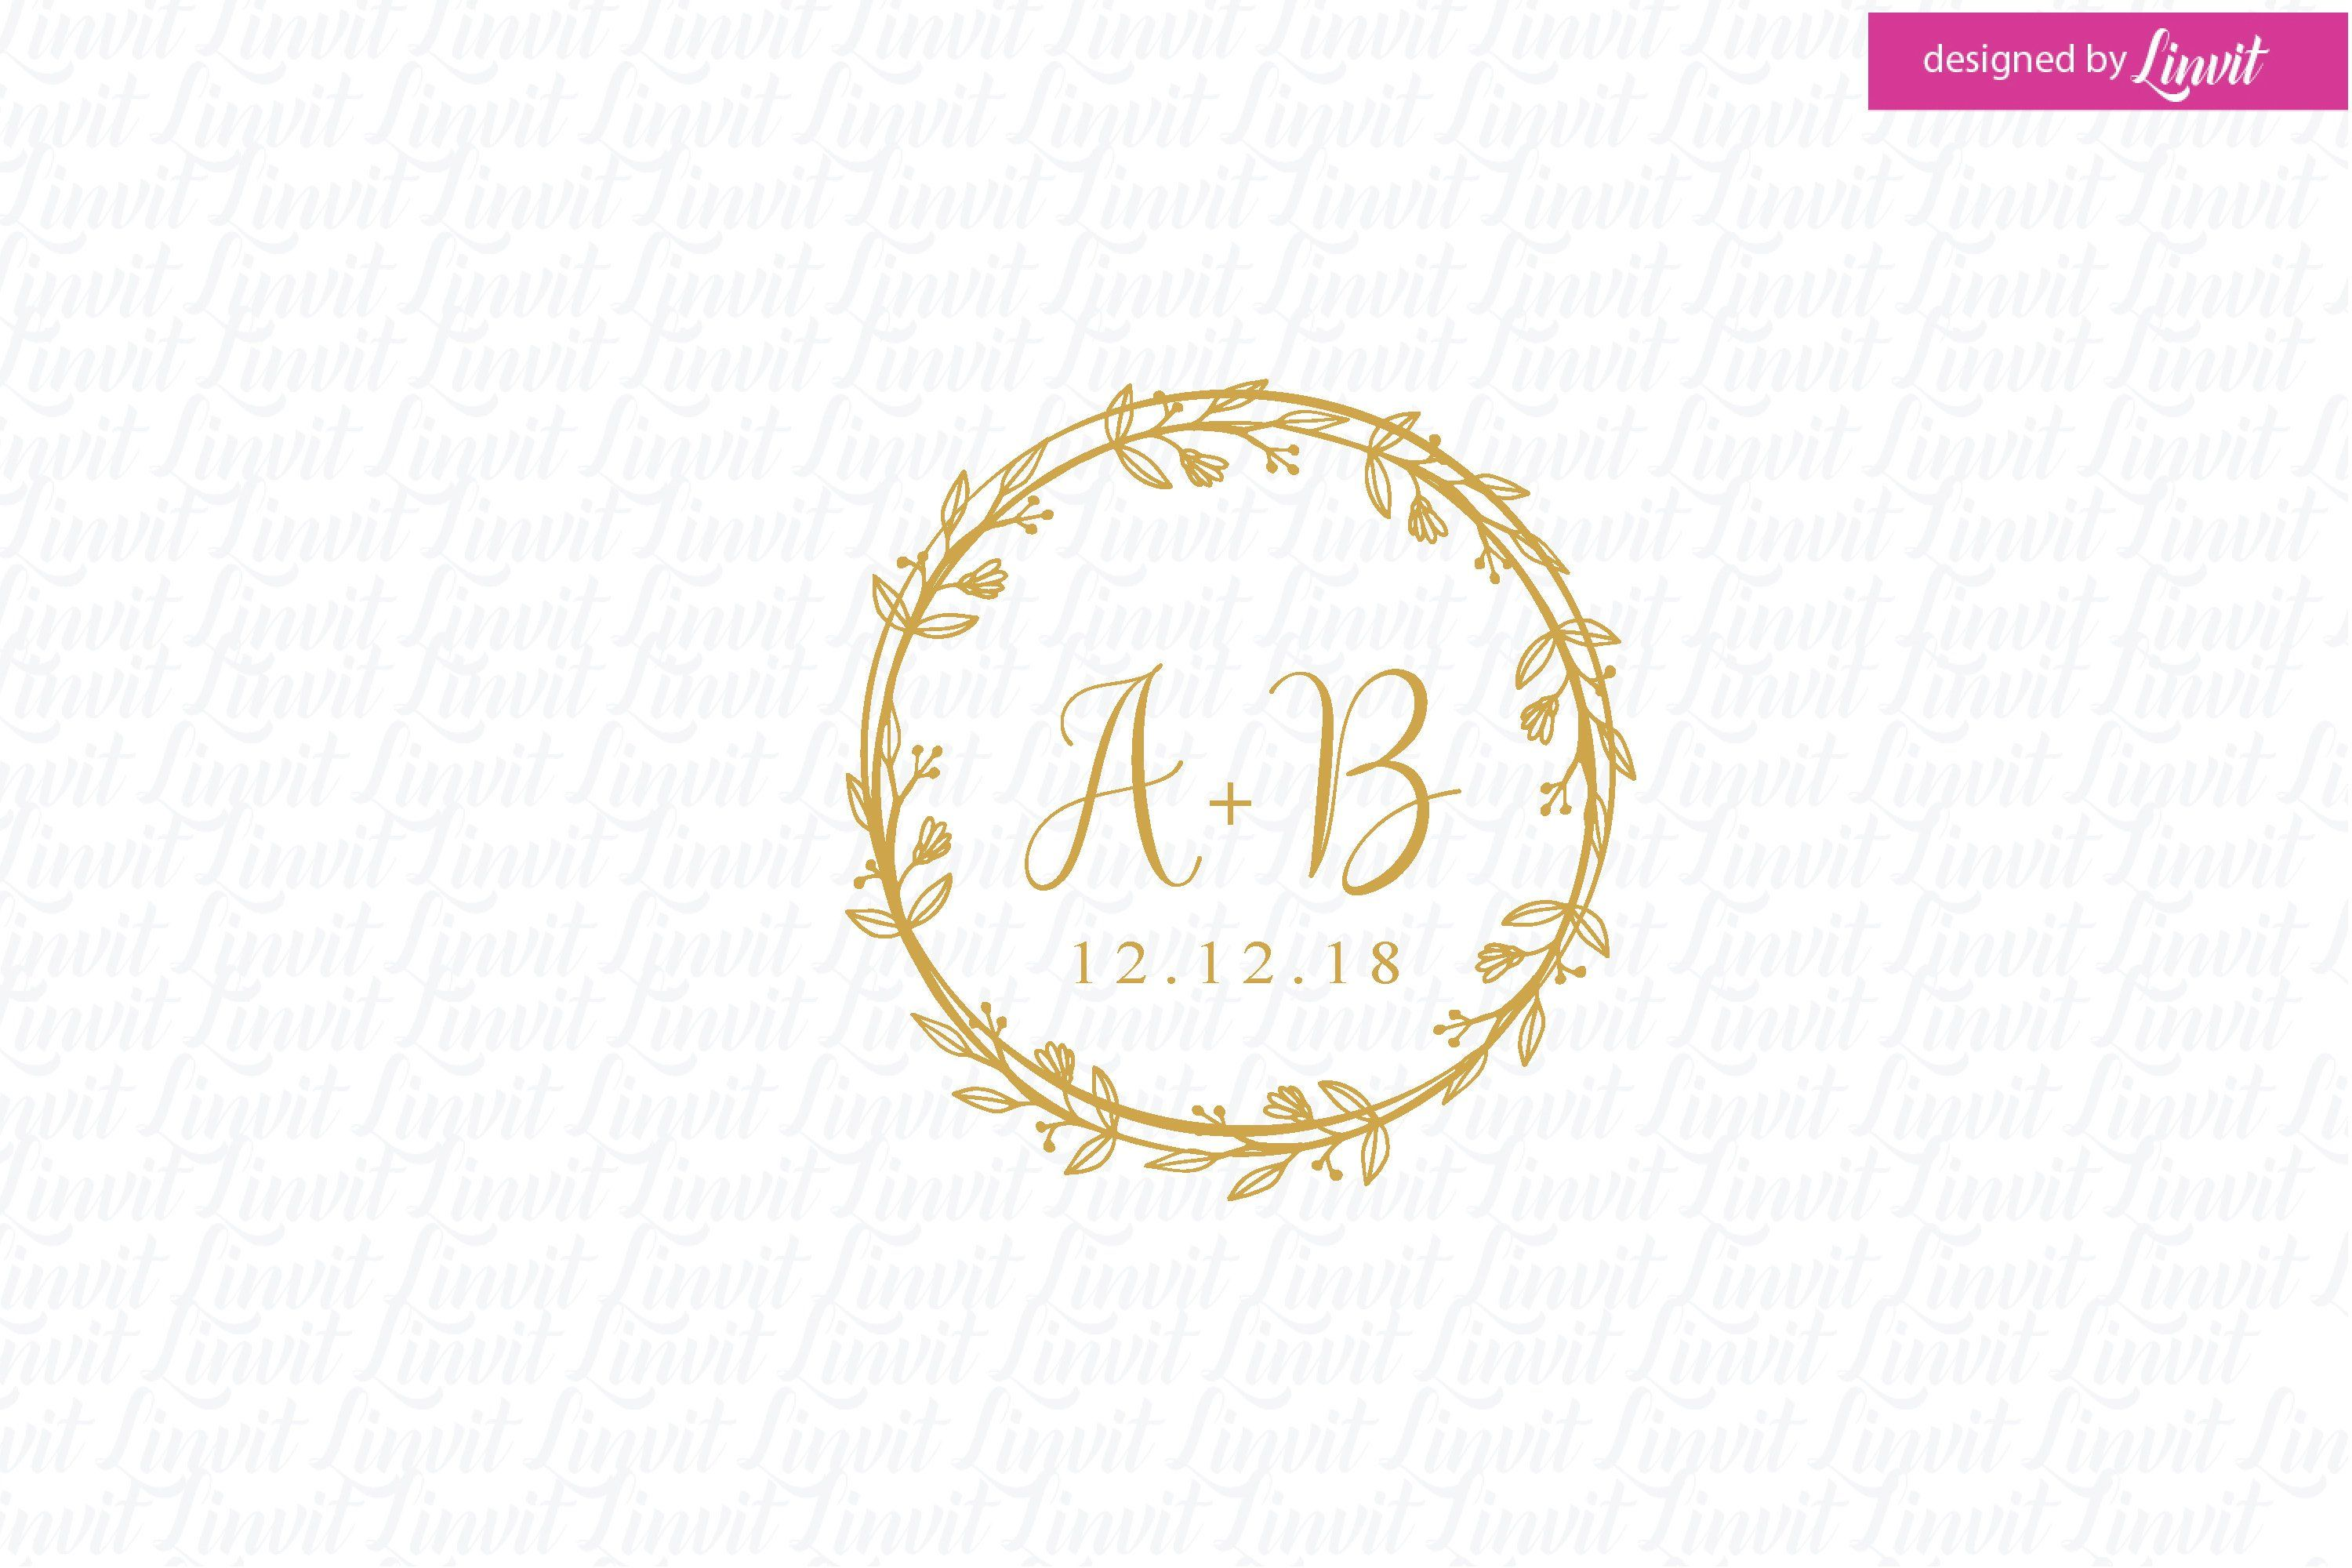 Wedding Logo Wedding Monogram Wedding Crest Custom Wedding Logo Logo Matrimonio Monograma Casame Monogram Wedding Wedding Logos Wedding Logo Monogram